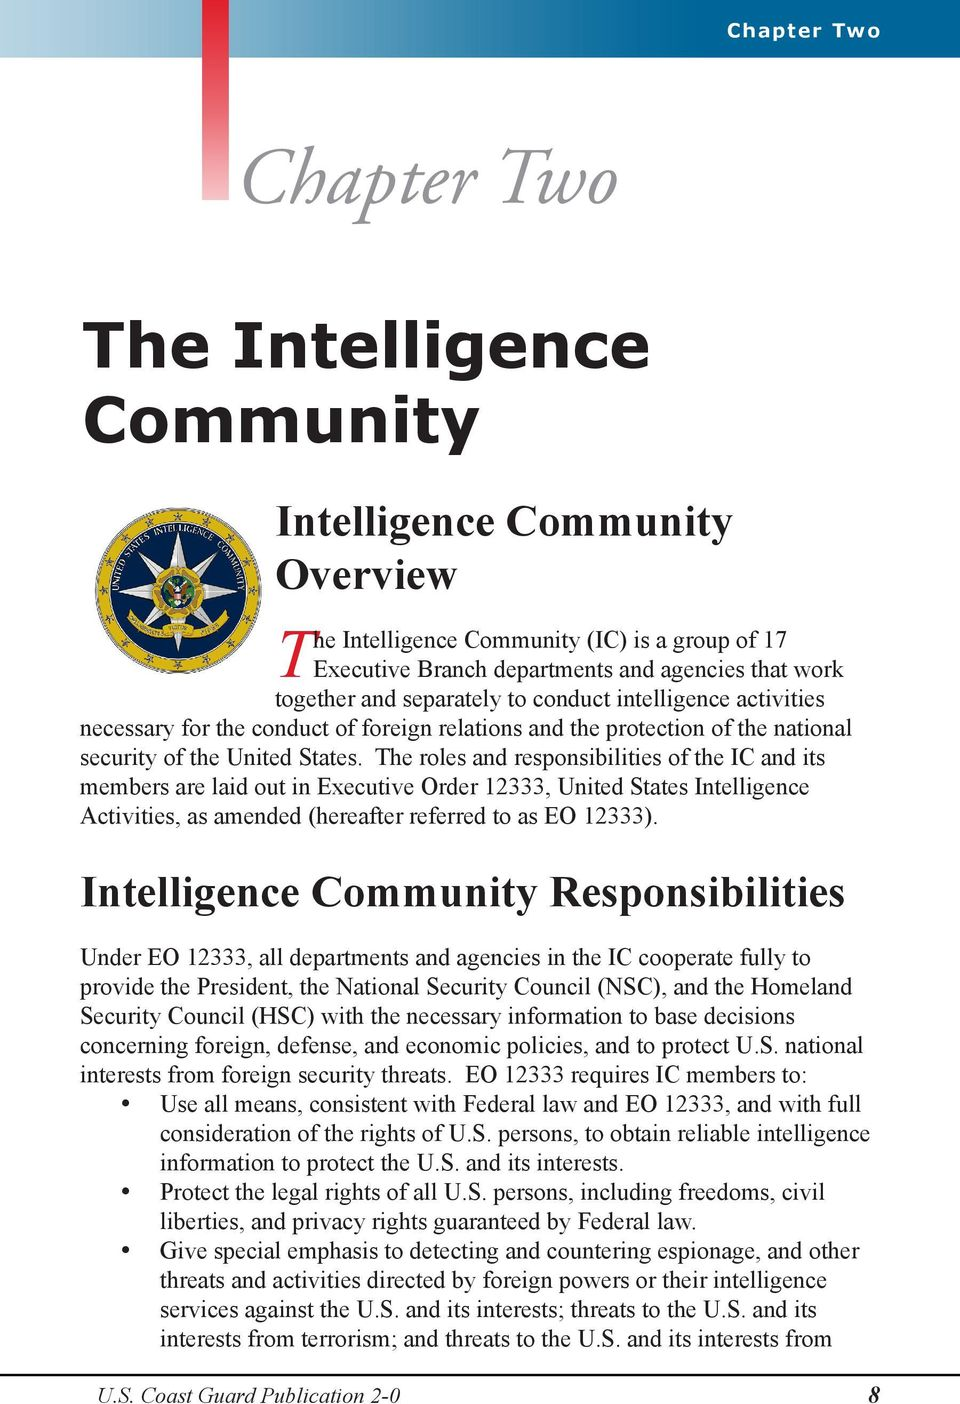 The roles and responsibilities of the IC and its members are laid out in Executive Order 12333, United States Intelligence Activities, as amended (hereafter referred to as EO 12333).